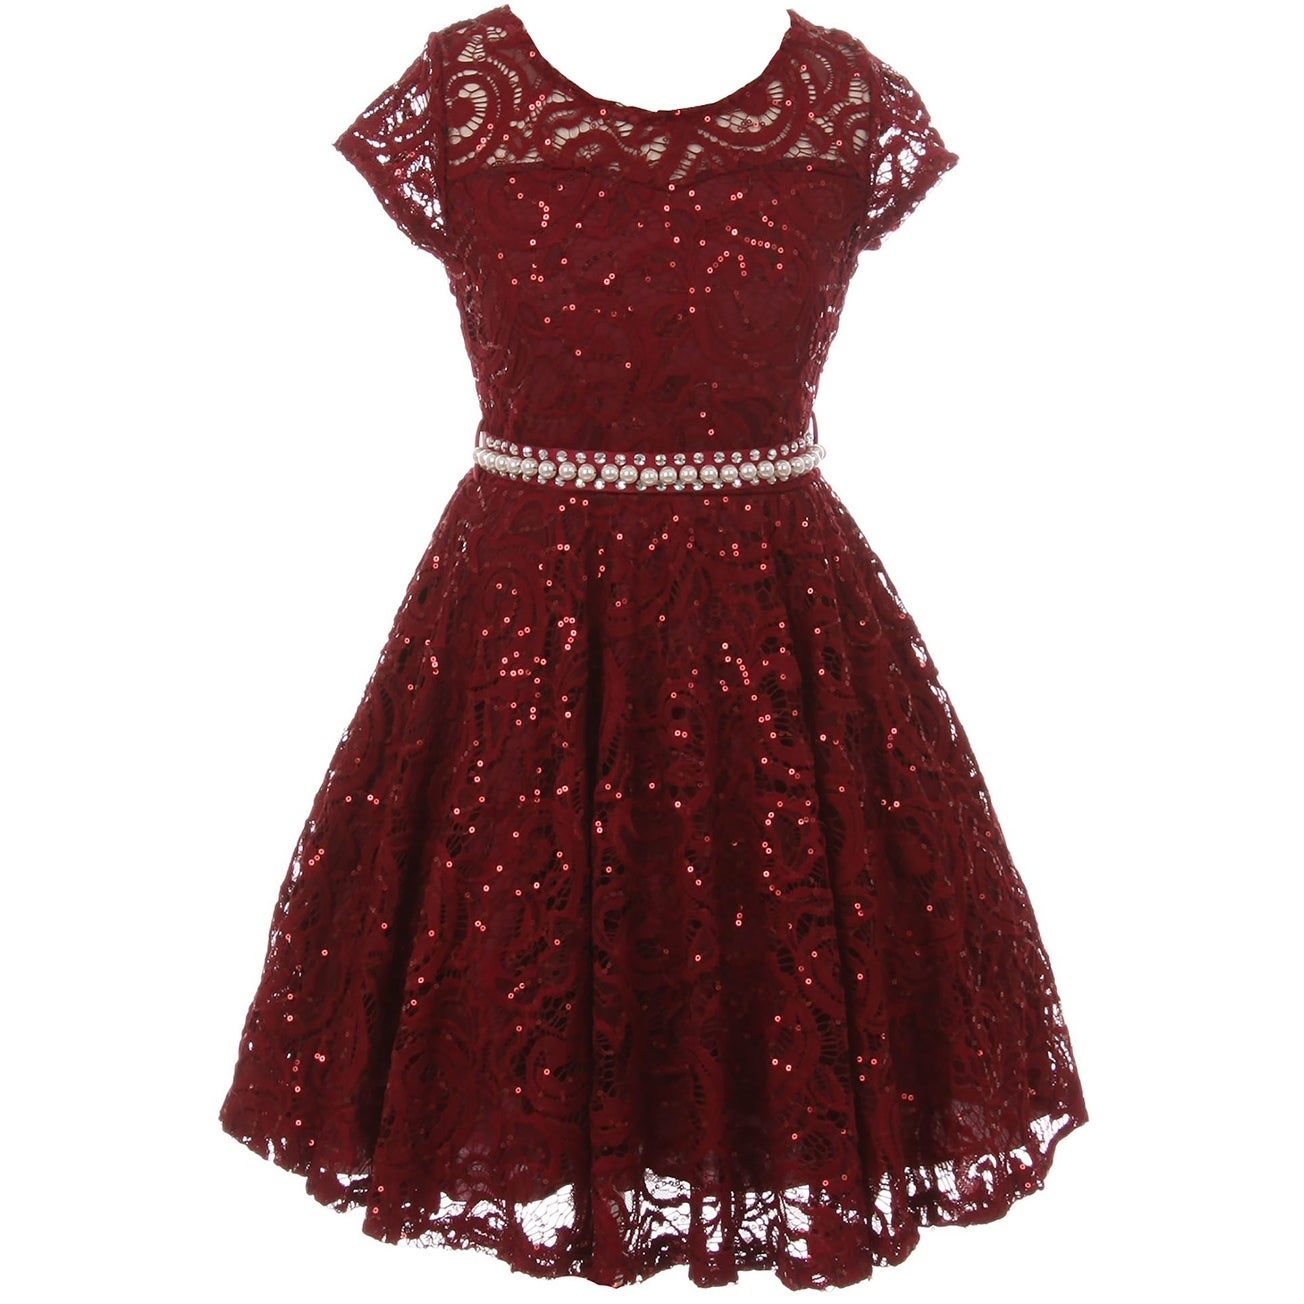 e17f53cb50 Flower Girl Dresses Burgundy - raveitsafe